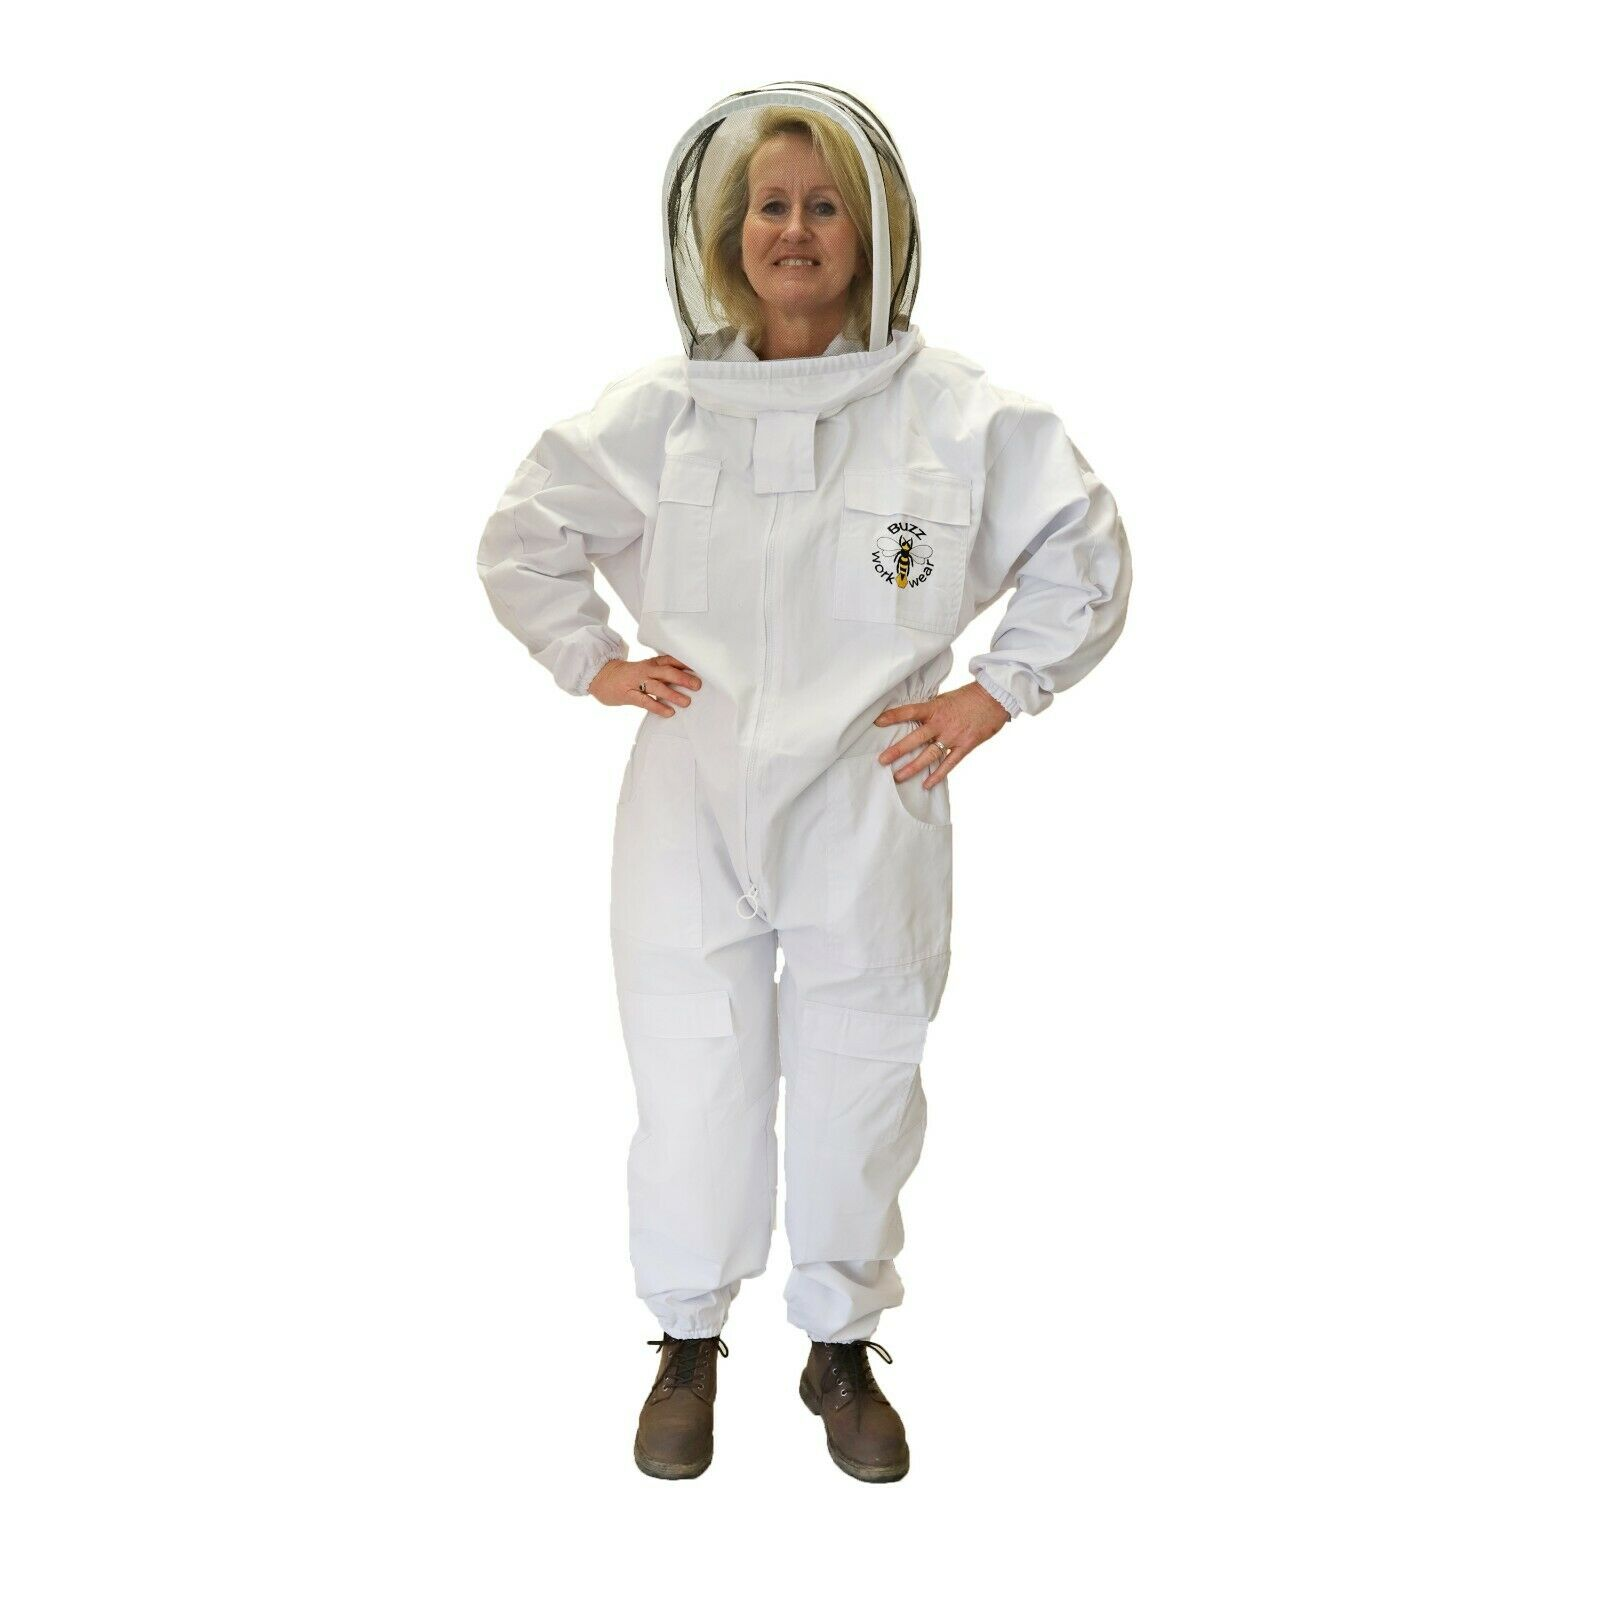 BUZZ Beekeepers Bee suit - 5XL (extra extra extra extra extra large)